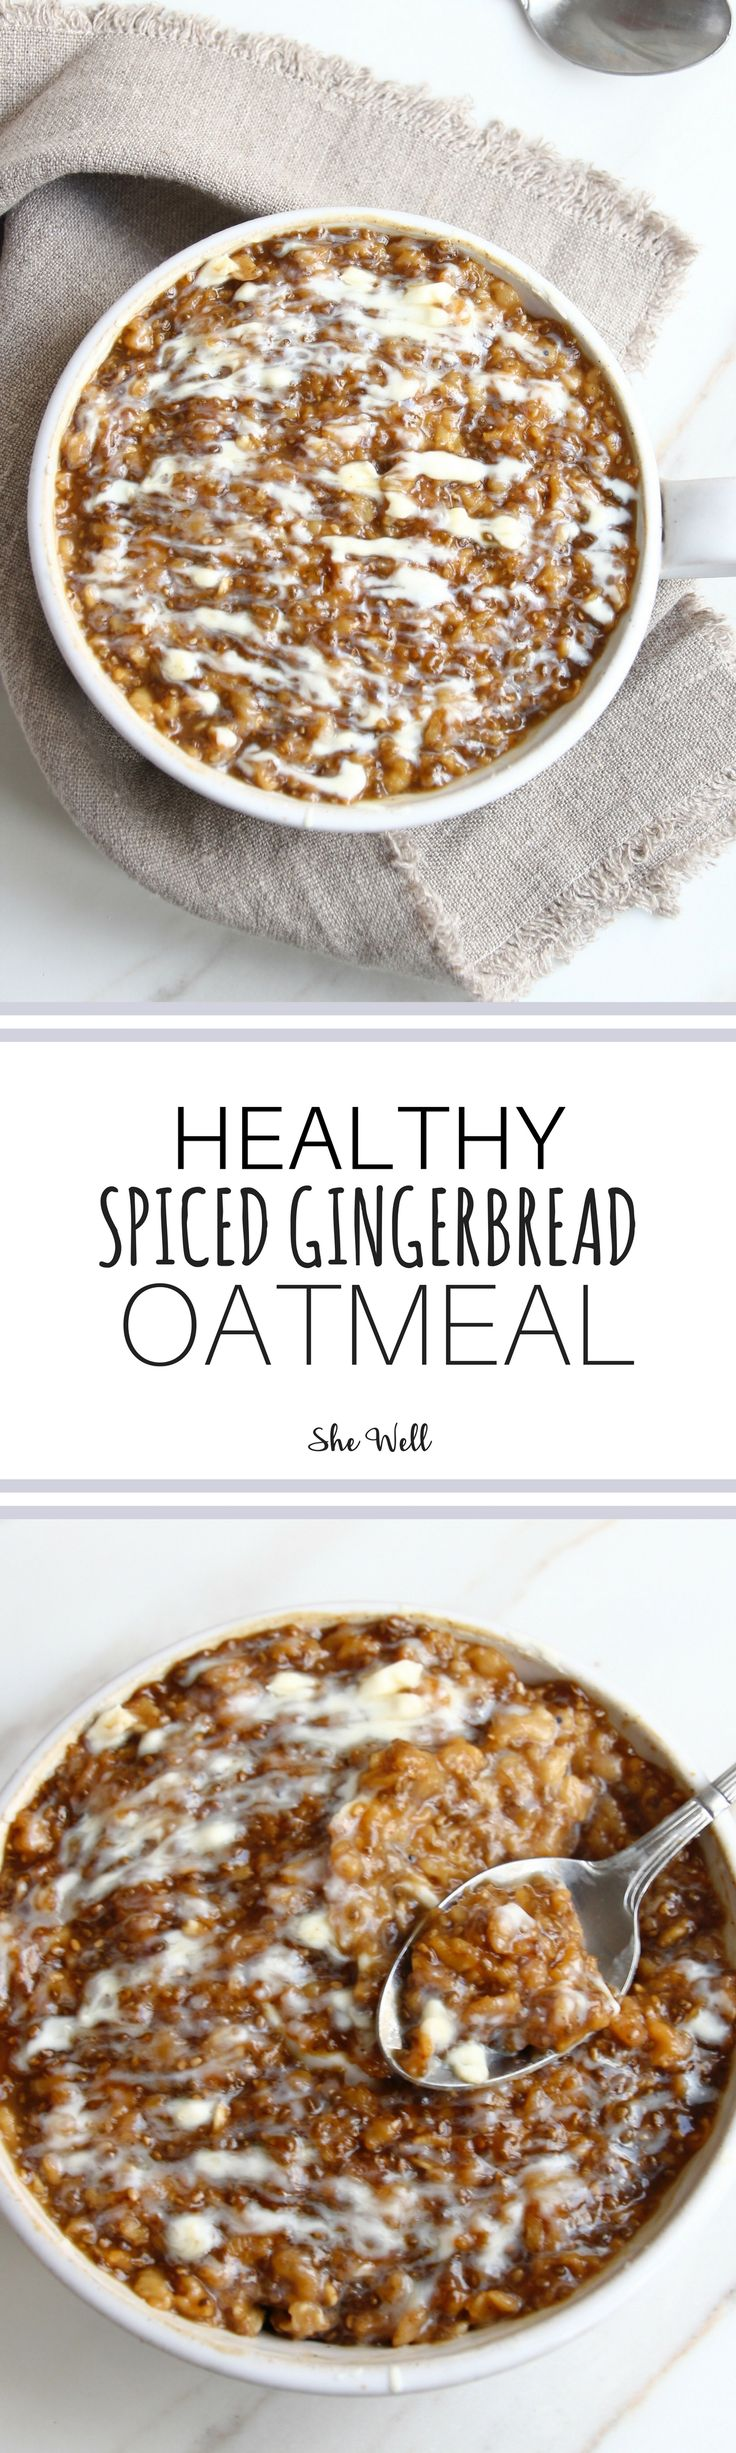 This healthy gingerbread oatmeal is the perfect breakfast or snack for the holidays! Great for people who are vegan, vegetarian, dairy-free and can be made gluten-free! Click to read now or pin for la (Christmas Recipes Breakfast)